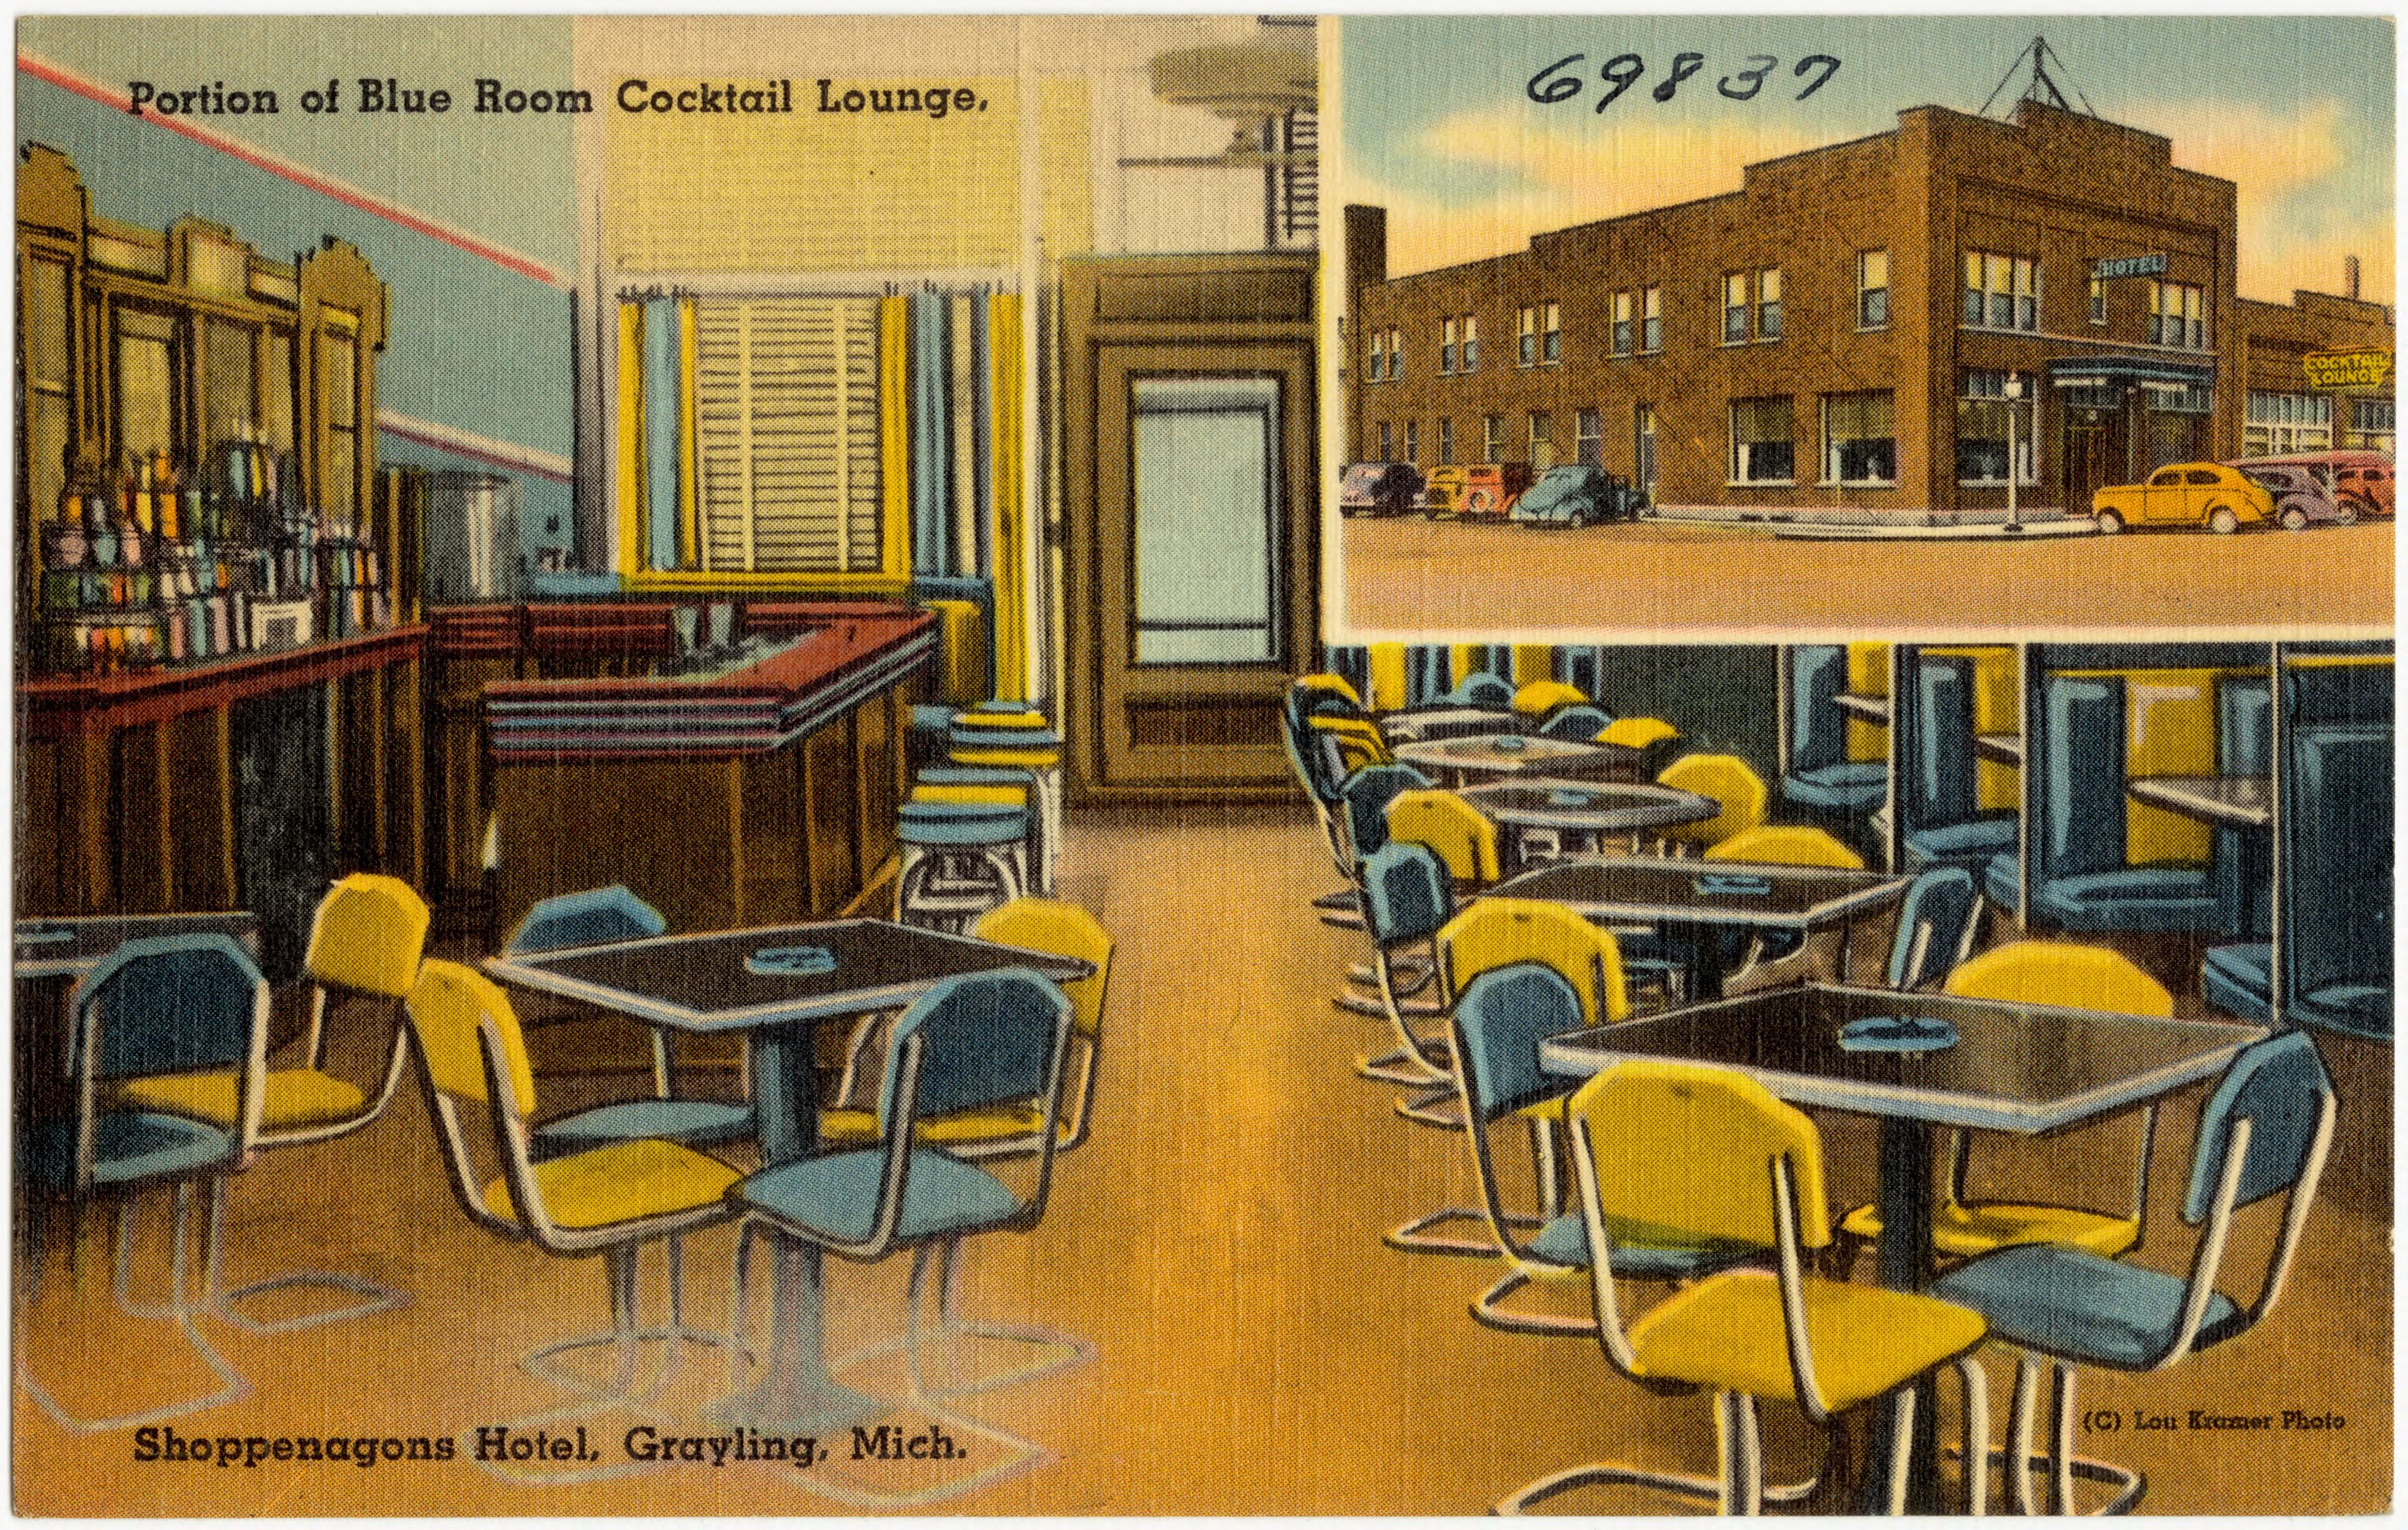 File Portion Of Blue Room Tail Lodge Penagone Hotel Grayling Michigan